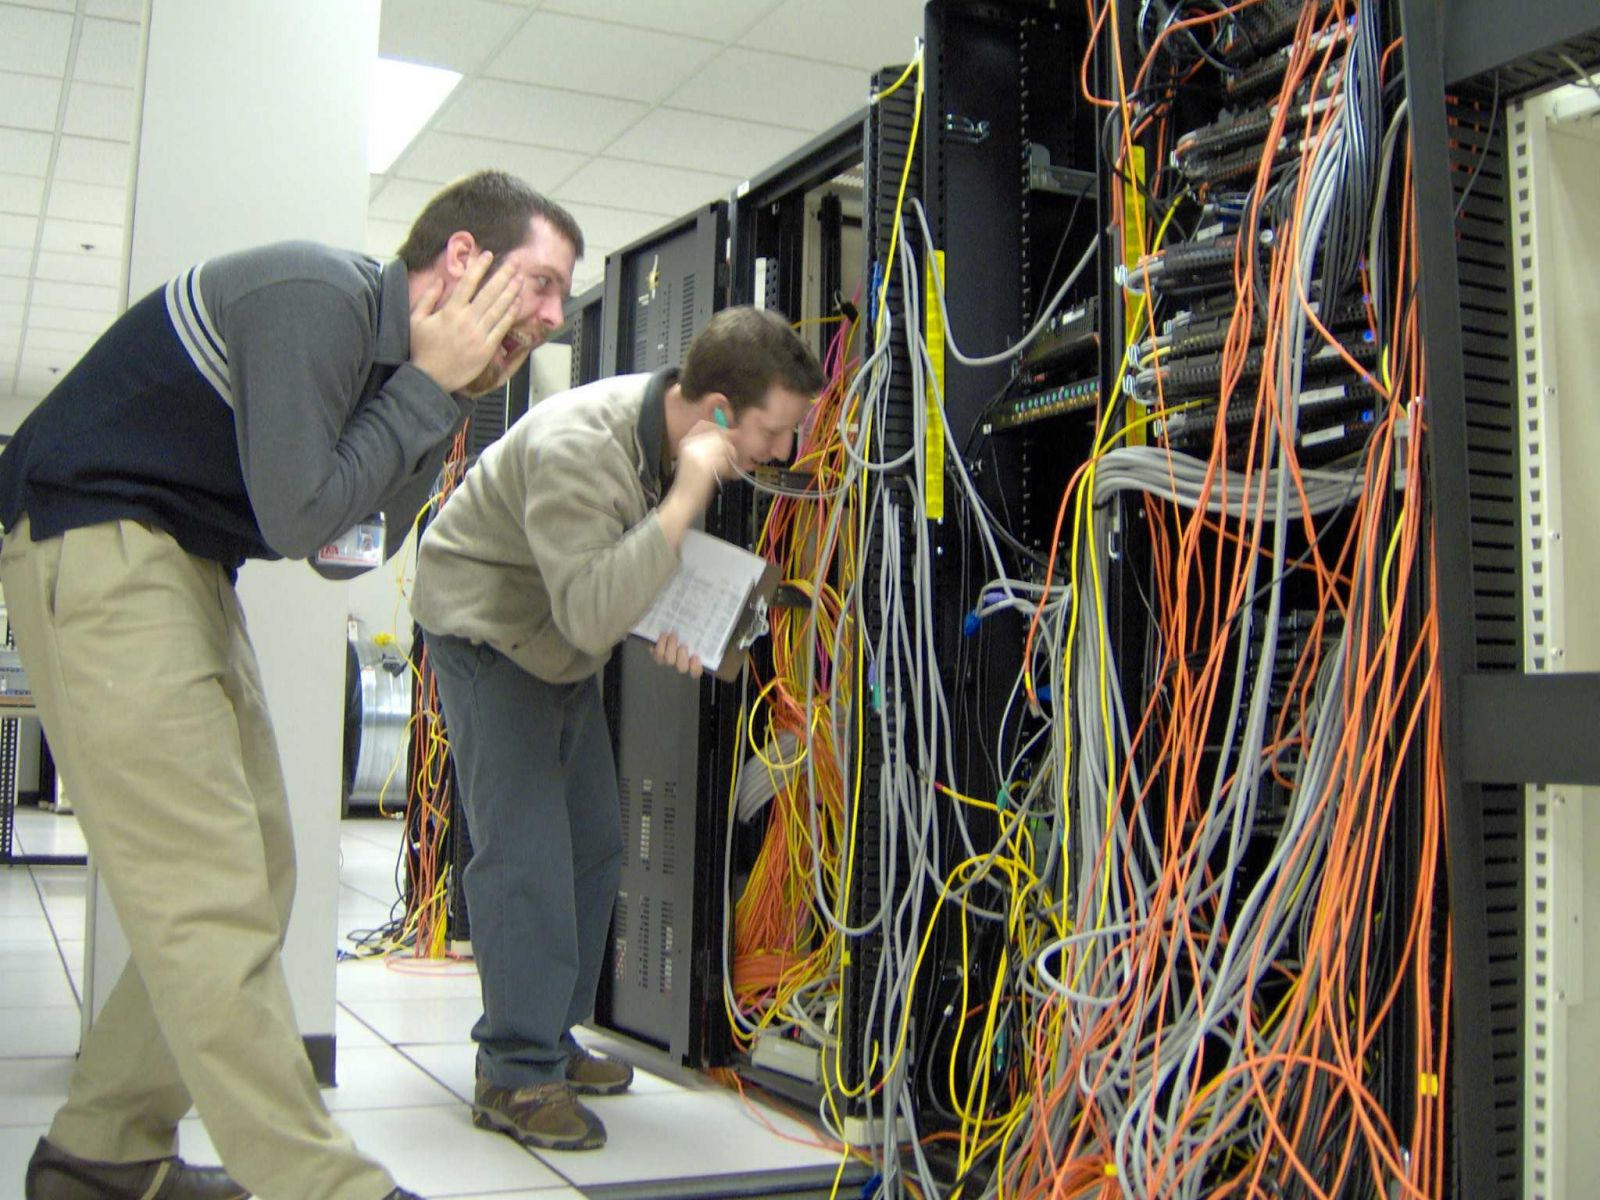 Structured Network Cabling Data Center Contact Us To Learn More About Our Wiring Services Houstons Voice And Fiber Specialist